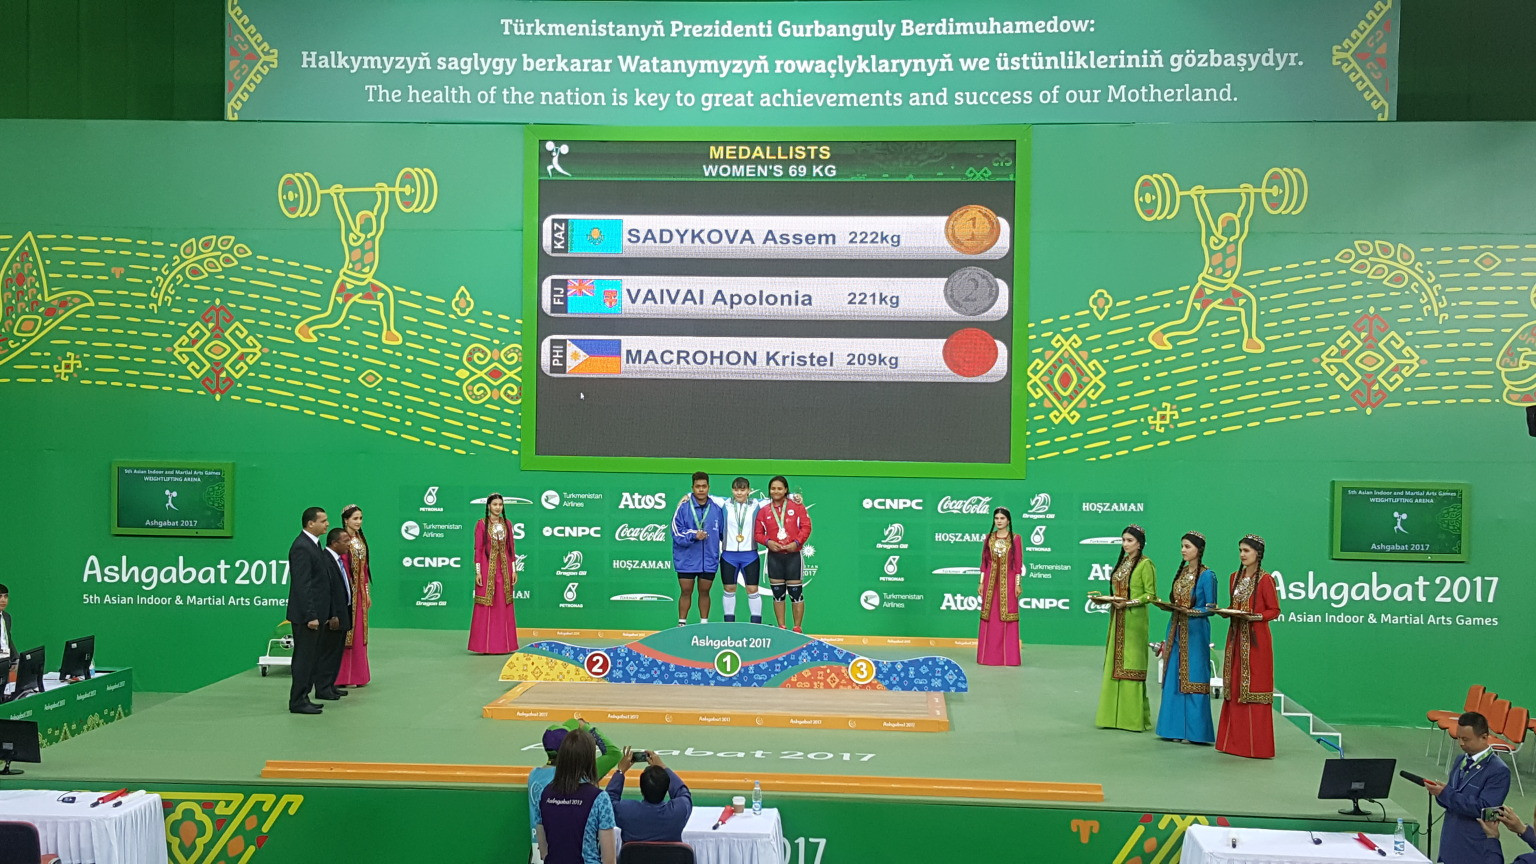 Athletes from 19 Oceania countries, including Fiji, competed at the 2017 Asian Indoor and Martial Arts Games in Ashgabat in Turkmenistan - an invitation now set to be extended to Hangzhou 2022 ©Ashgabat 2017